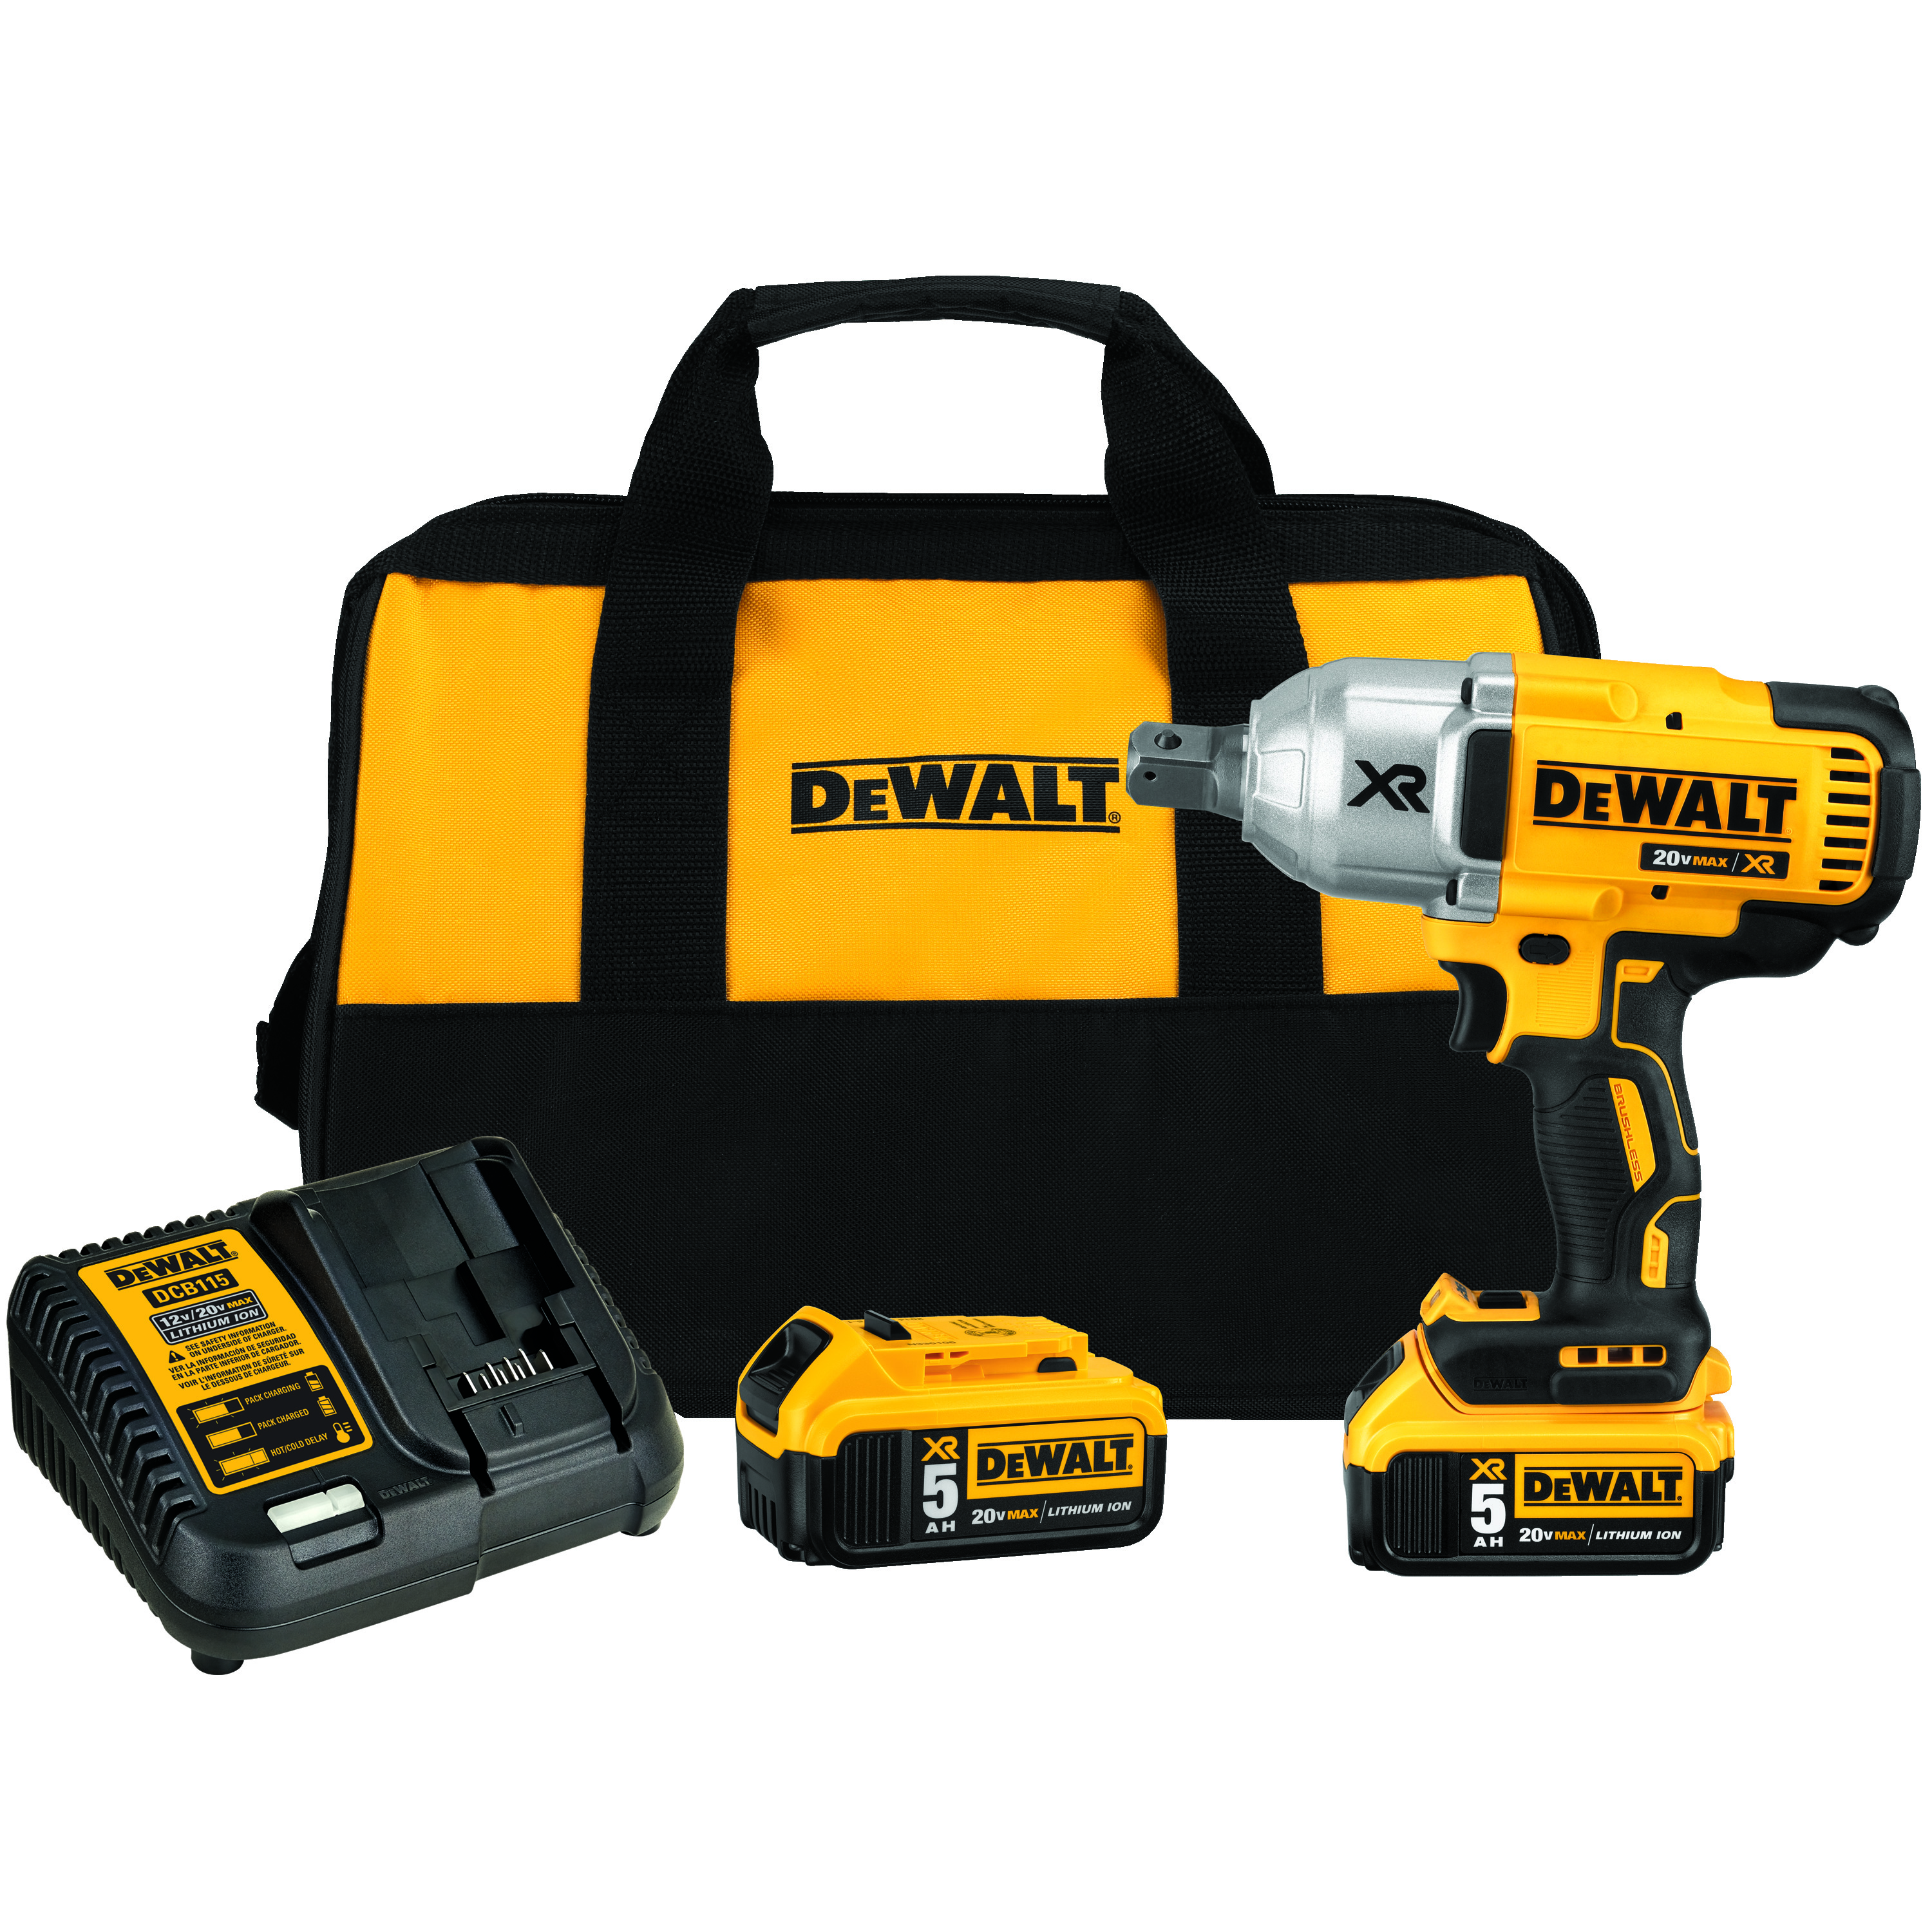 DeWALT® 20V MAX* MATRIX™ DCF897P2 Compact Cordless Impact Wrench Kit, 3/4 in Straight Drive, 1200 ft-lb Torque, 20 VDC, 8.81 in OAL